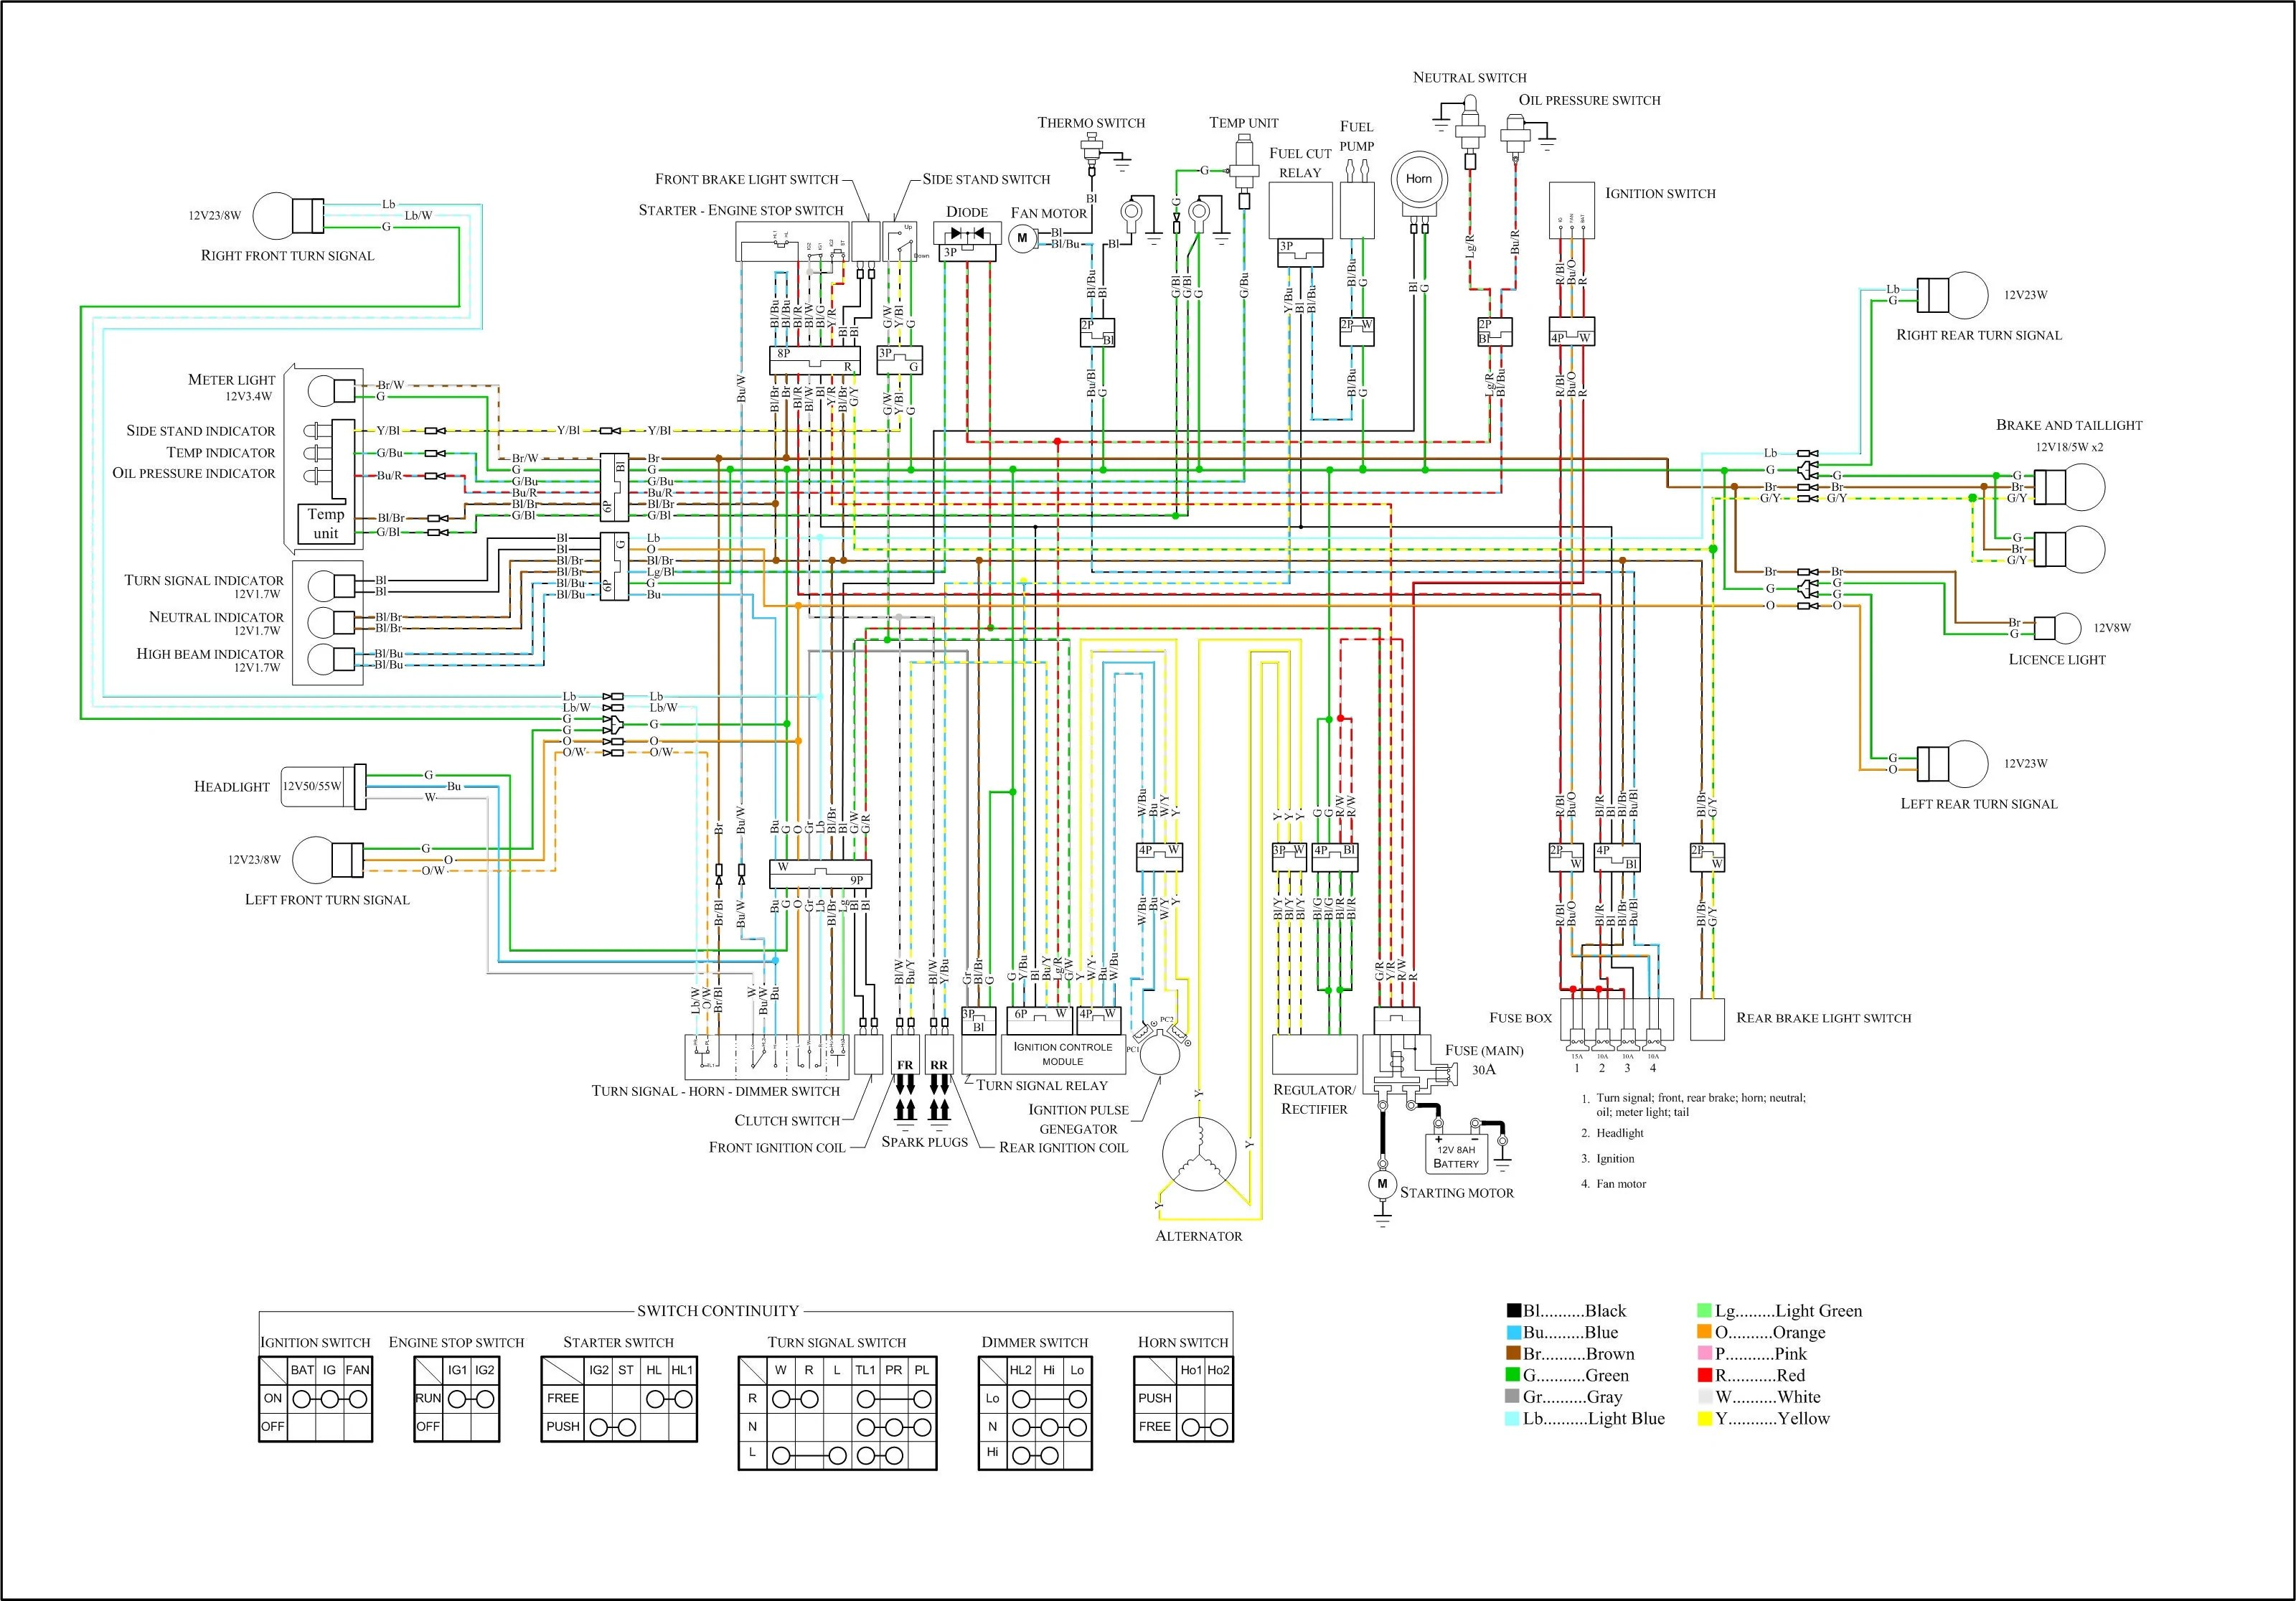 vt750 wiring diagram wiring diagrams scematic basic house wiring diagrams cb1100 wiring diagram [ 3200 x 2231 Pixel ]